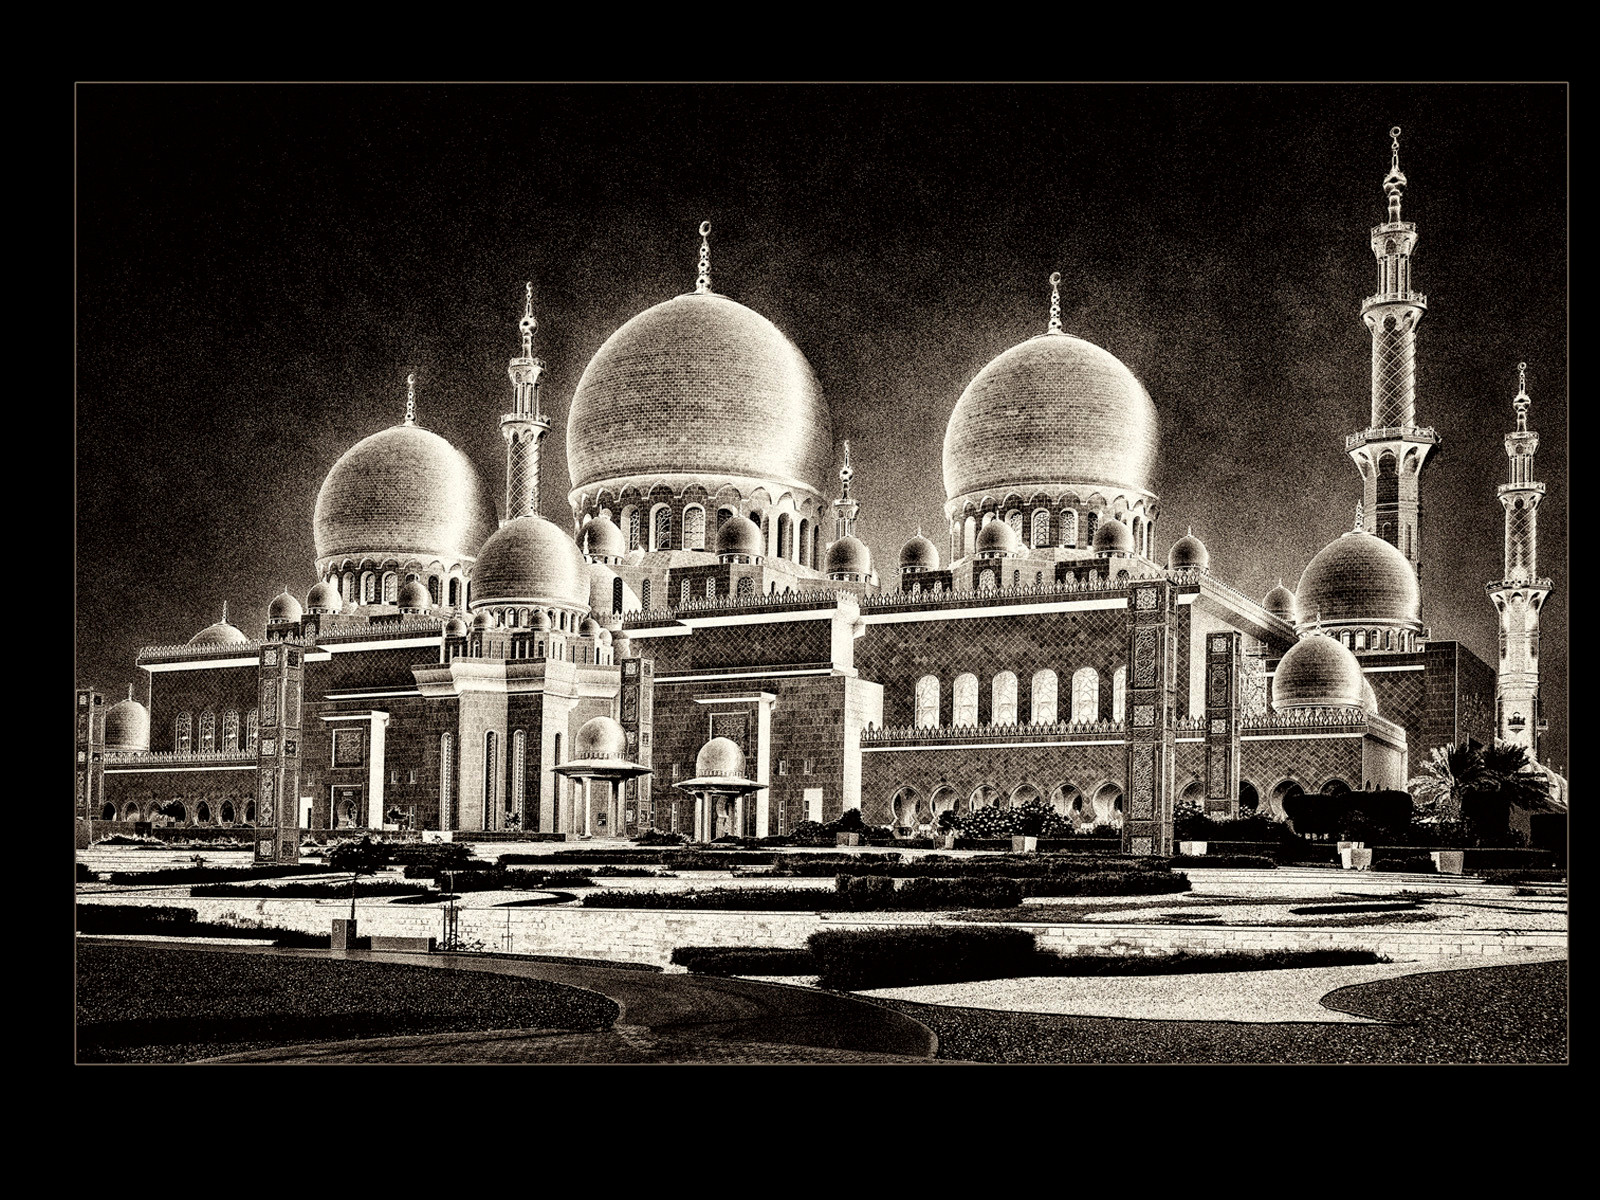 MONO - Mosque by Brian Hennessy (10 marks)